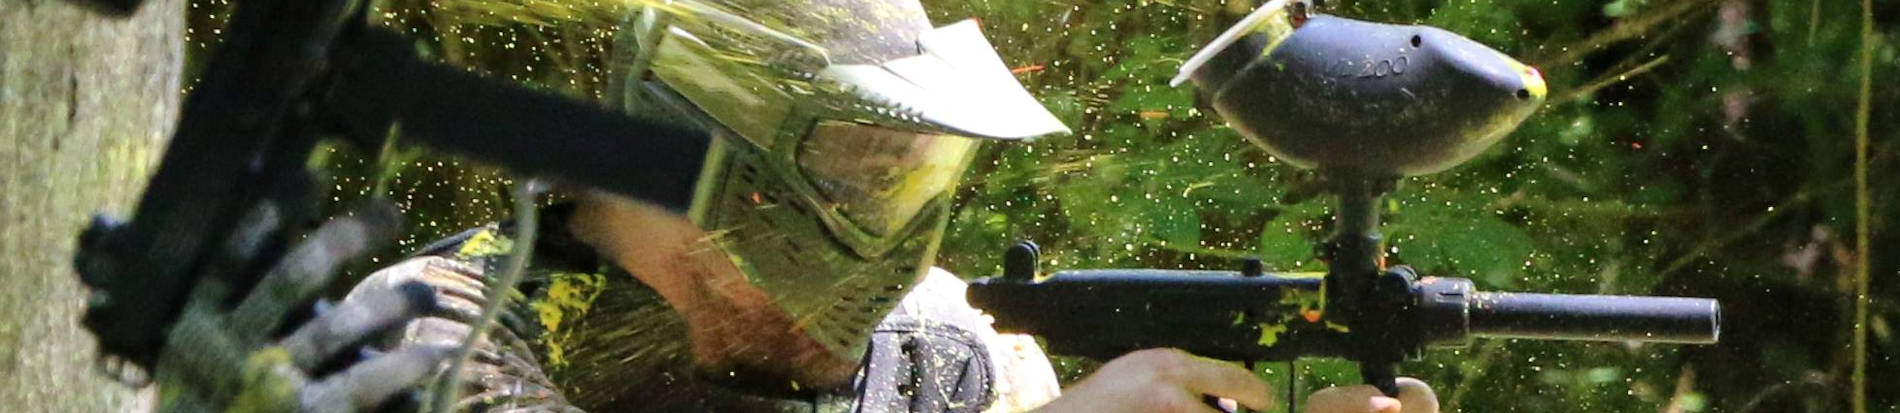 FORESTFIRE PAINTBALL